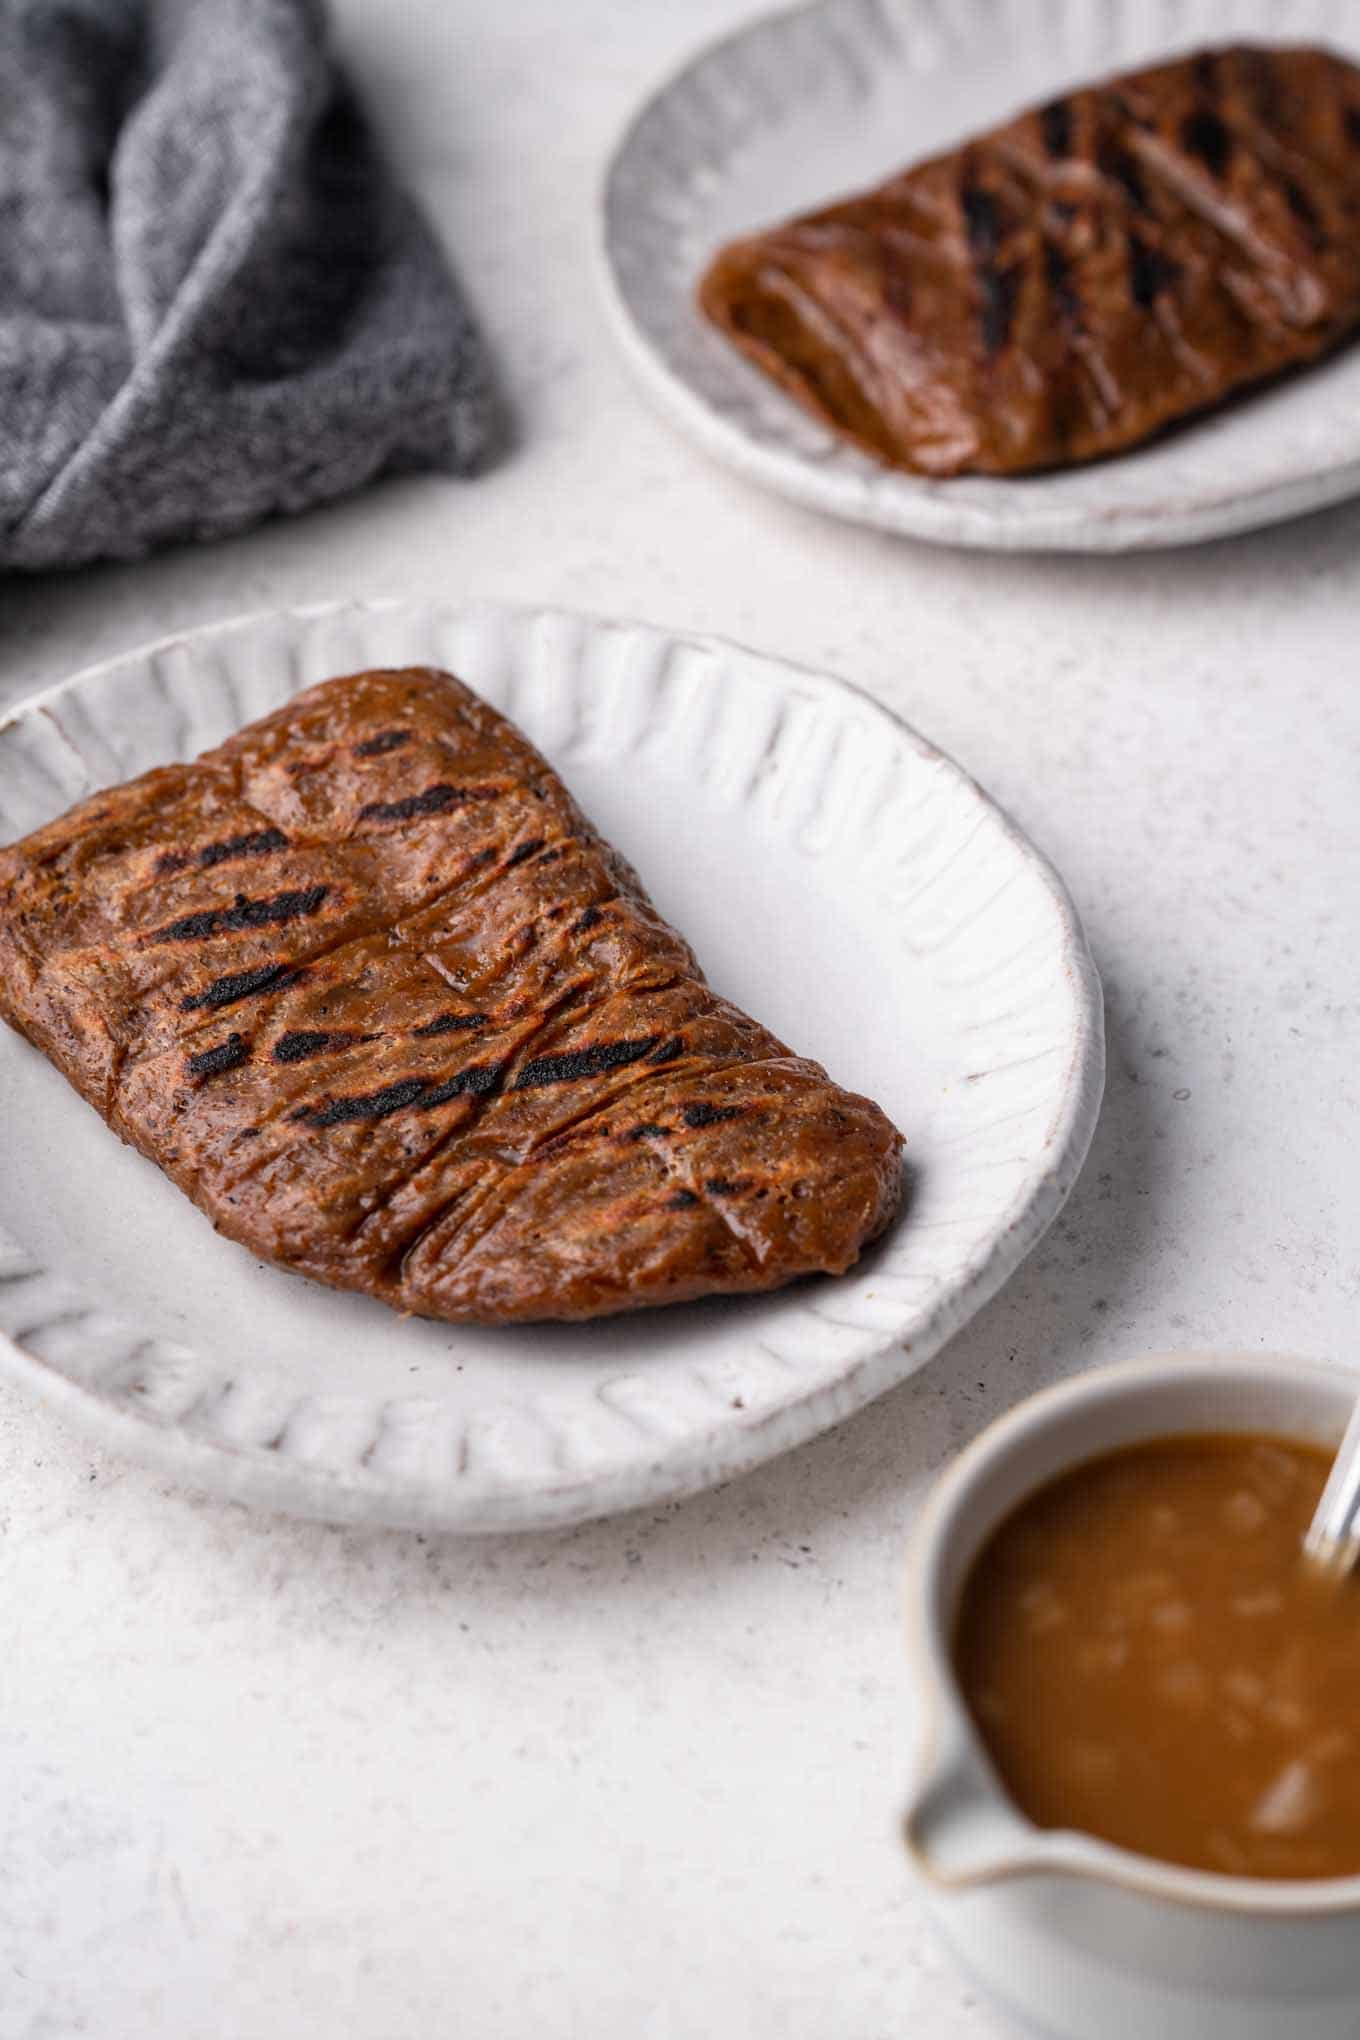 grilled seitan steaks on plates with a side of gravy